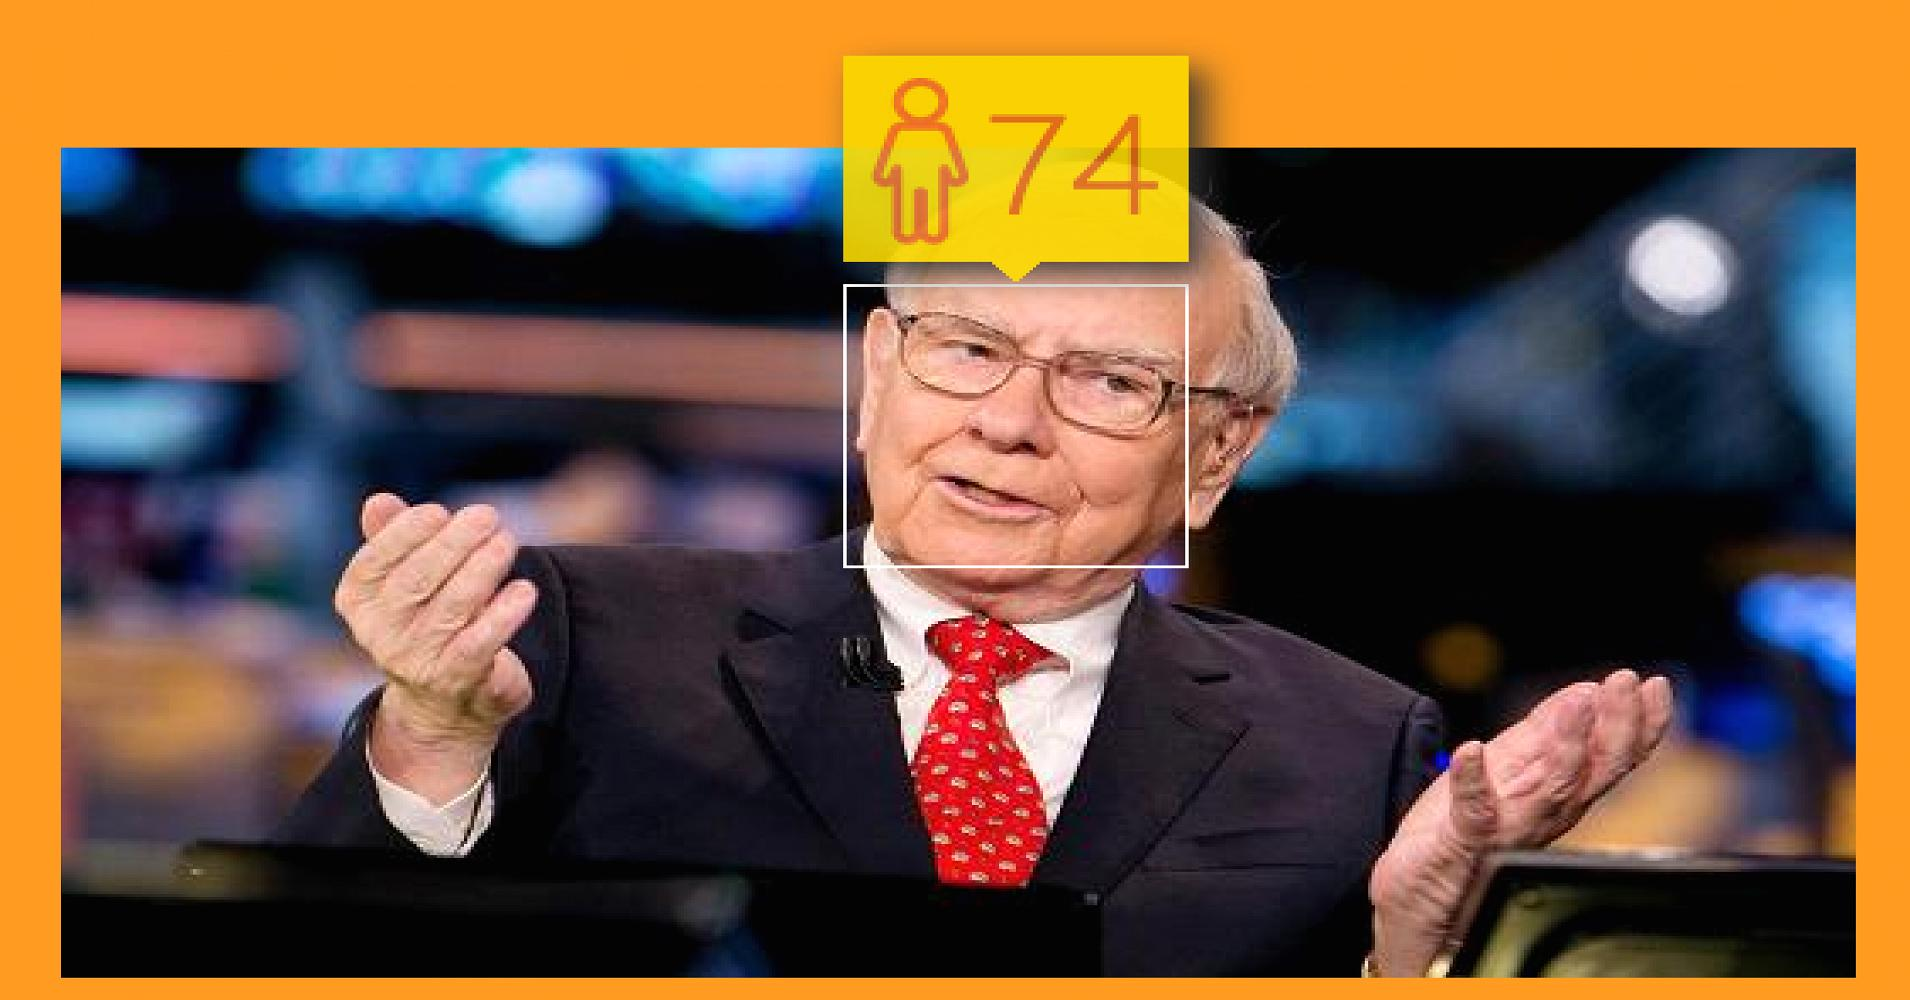 How old? Popular site hits, and misses, CEO ages